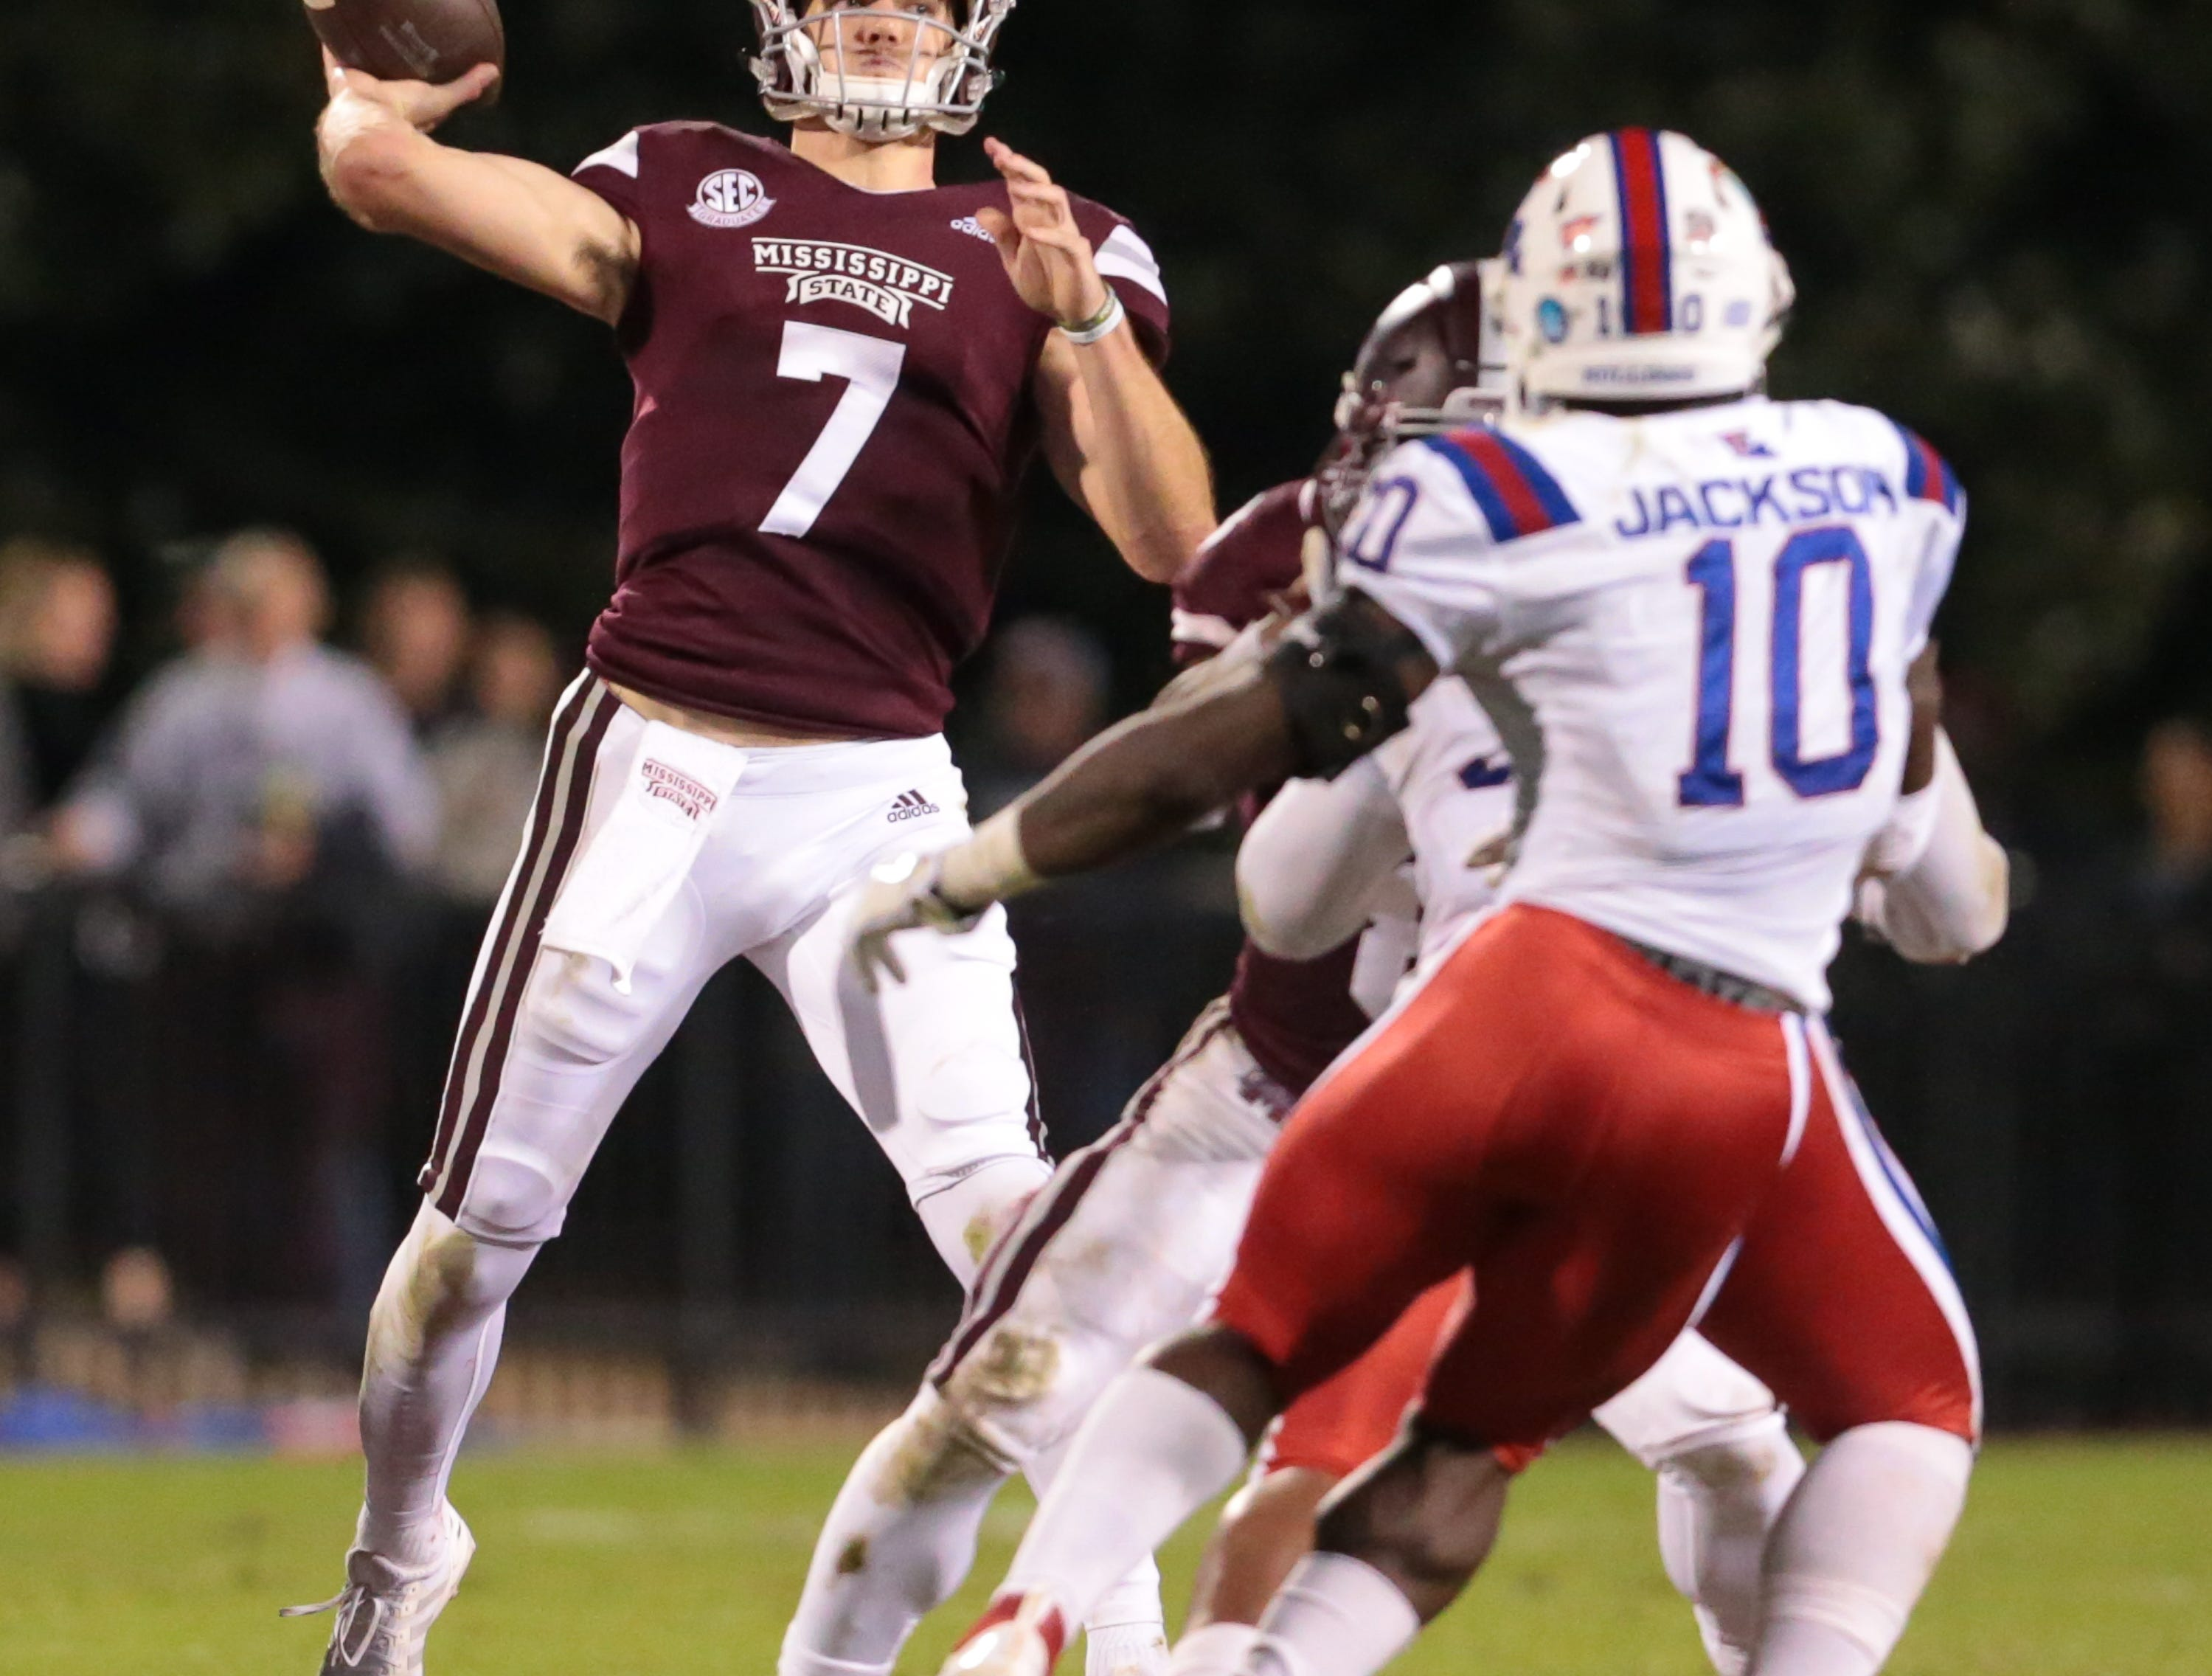 Mississippi State's Nick Fitzgerald (7) releases a pass in the second quarter. Mississippi State and Louisiana Tech played in a college football game on Saturday, November 3, 2018, in Starkville. Photo by Keith Warren/Madatory Photo Credit